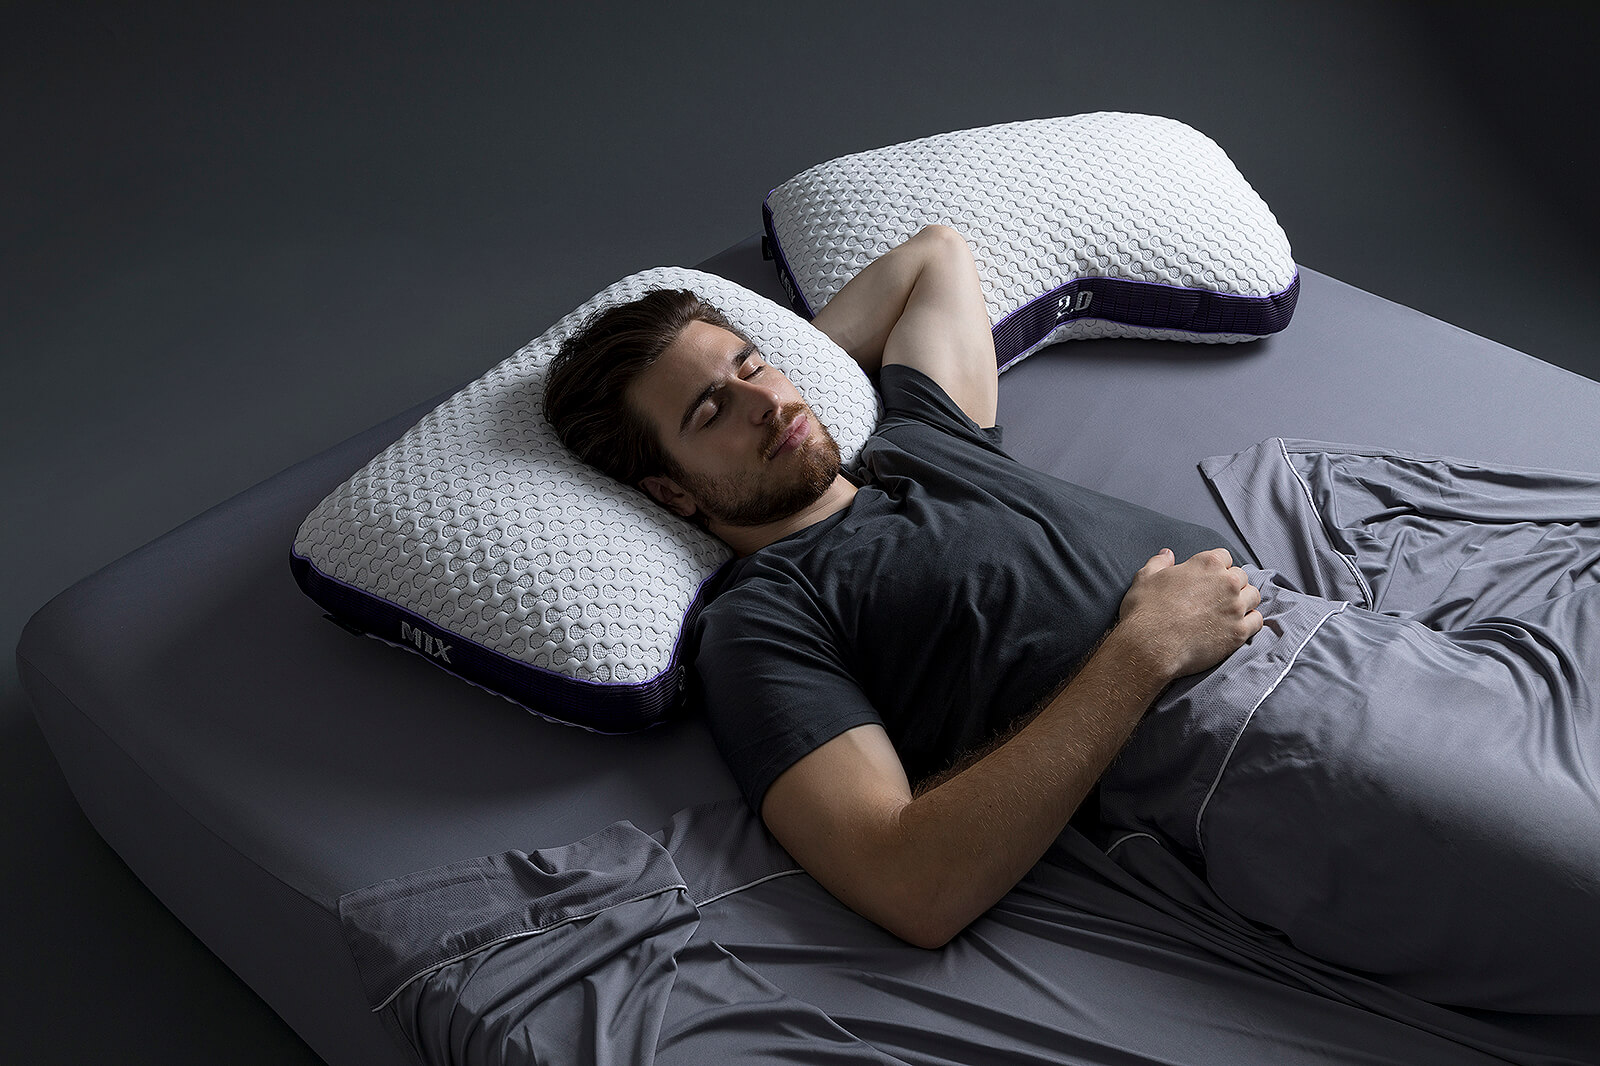 BEDGEAR M1X Pillow